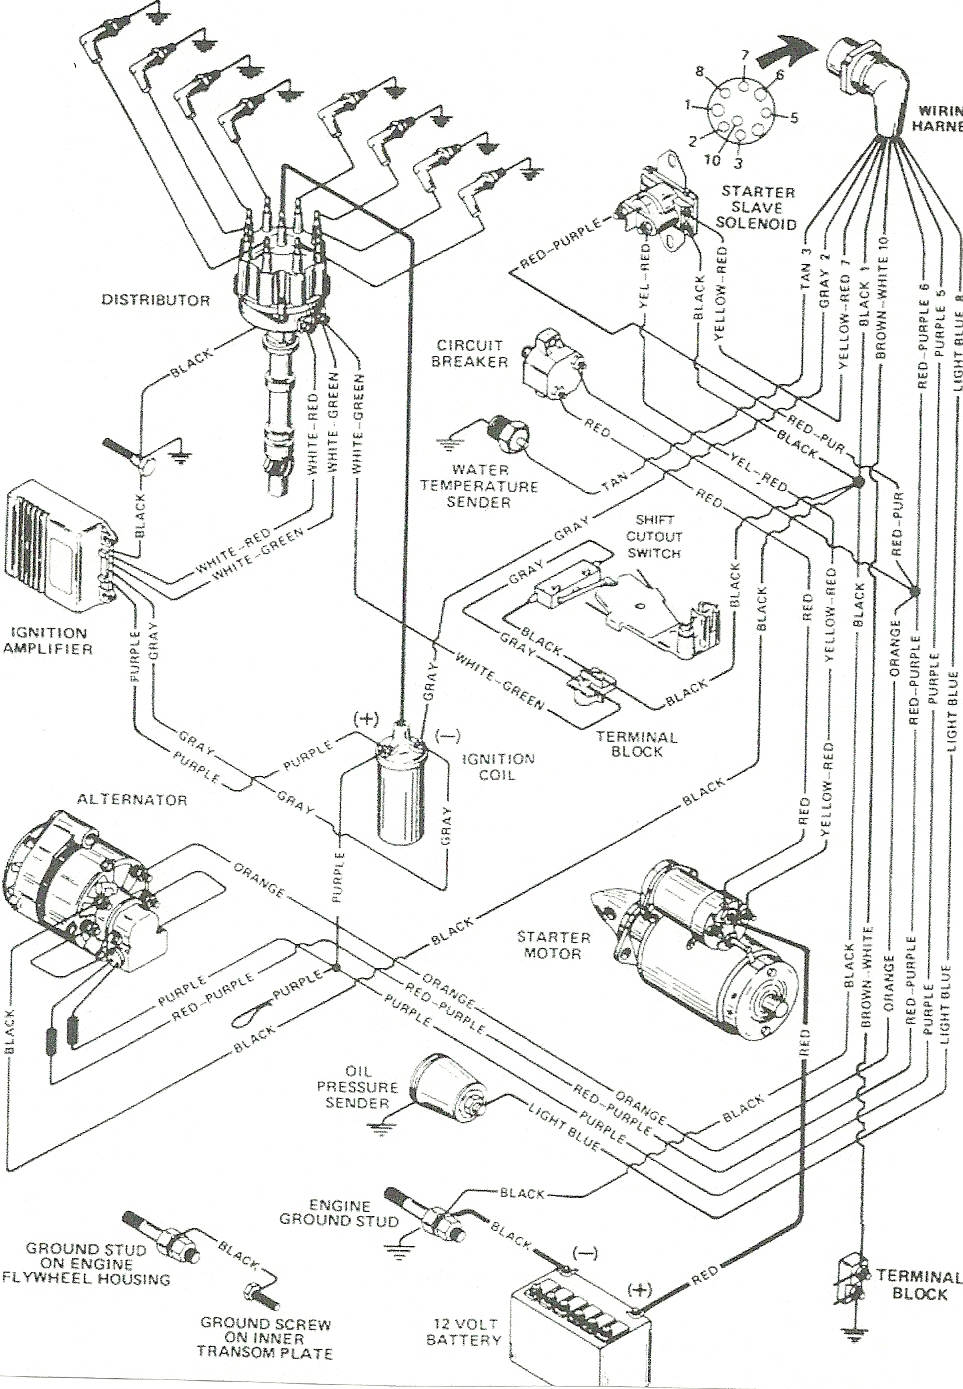 Where Can I Find Schematics For 1984 Formula Thunderbird